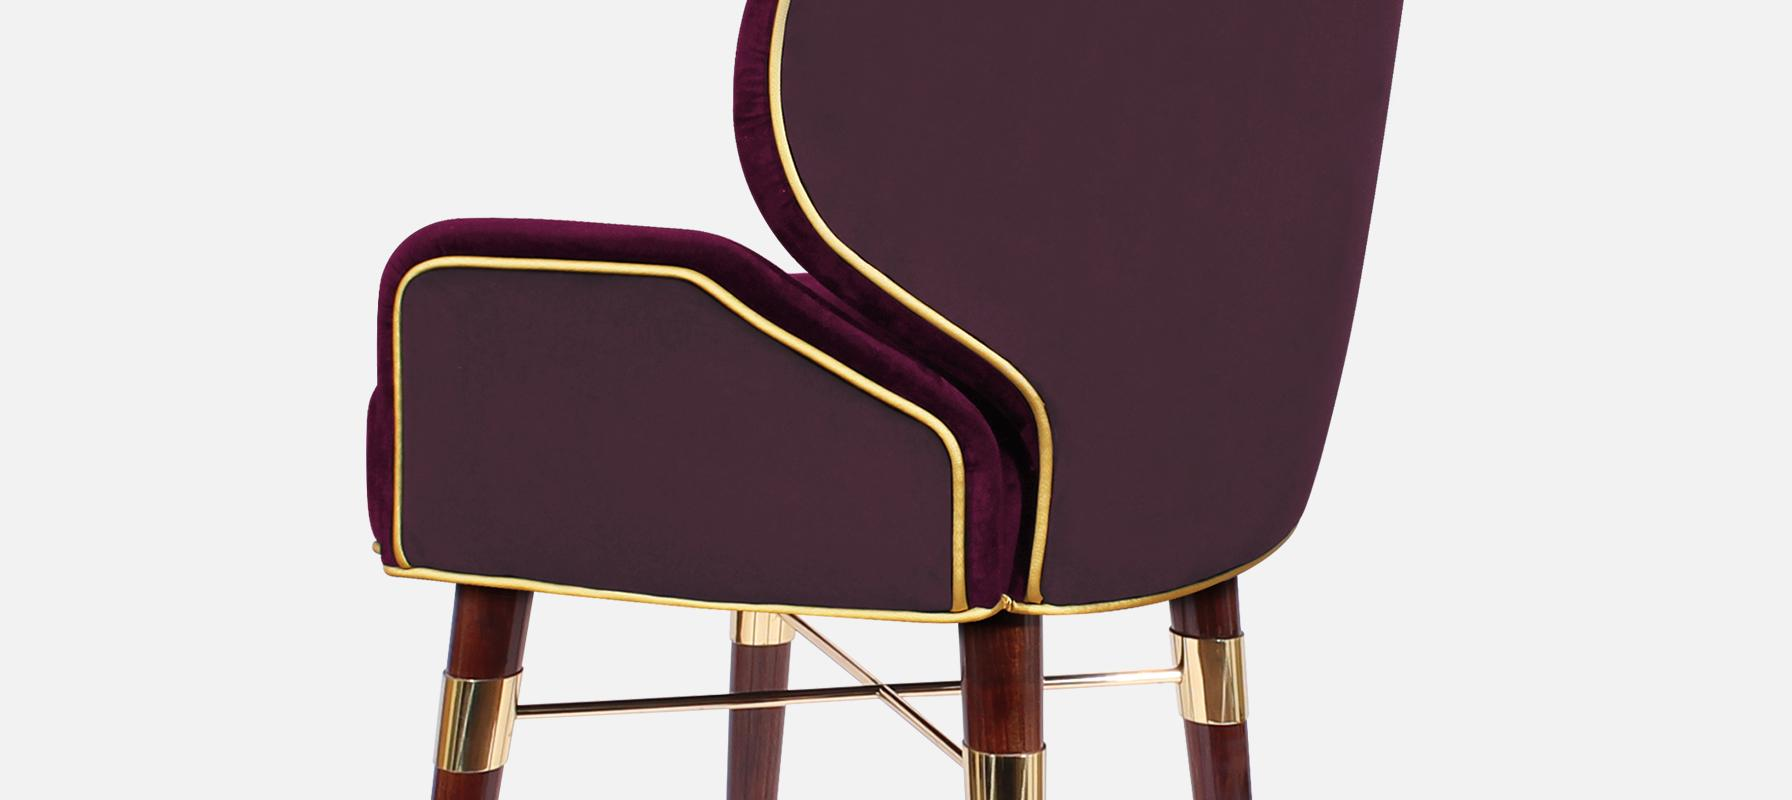 Louis I Mid-Century Bar Chair detail in red cotton velted and gold pipping